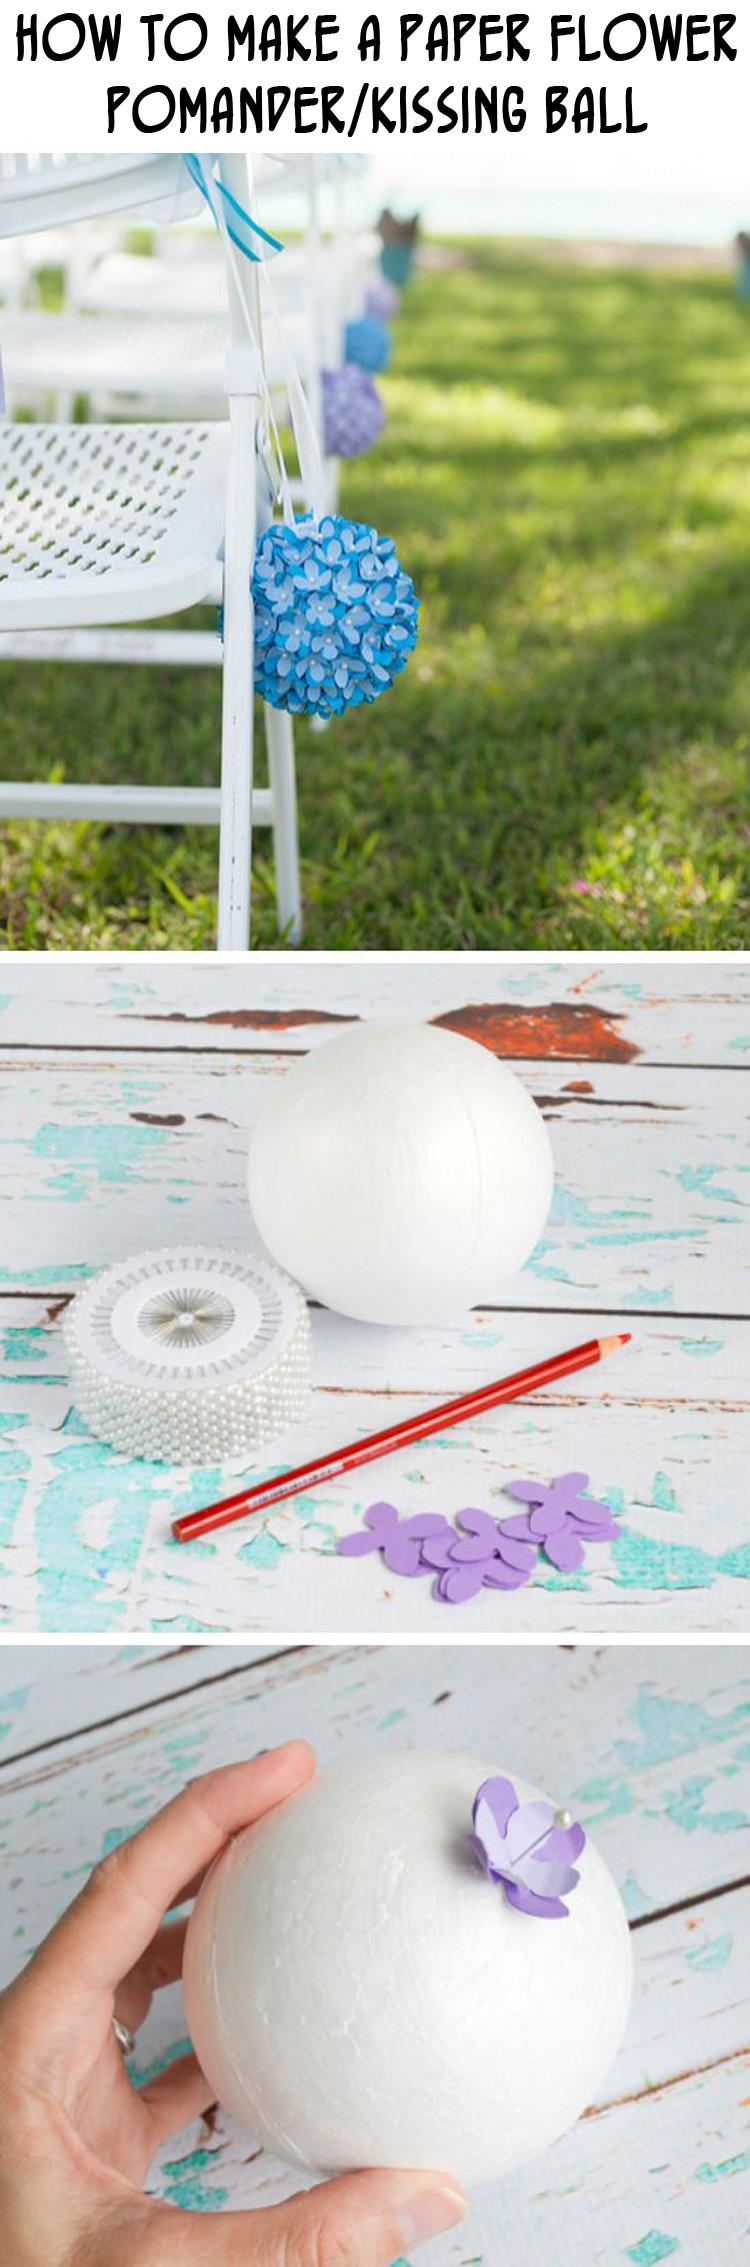 How to Make a Paper Flower Pomander Kissing Ball